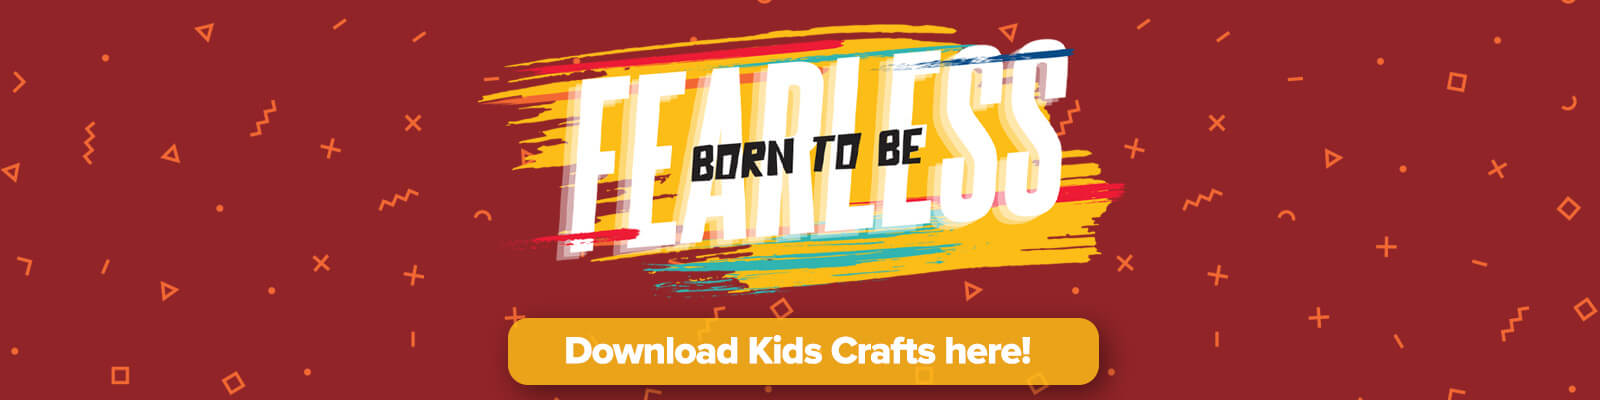 Download Kids Crafts and Worksheets here!